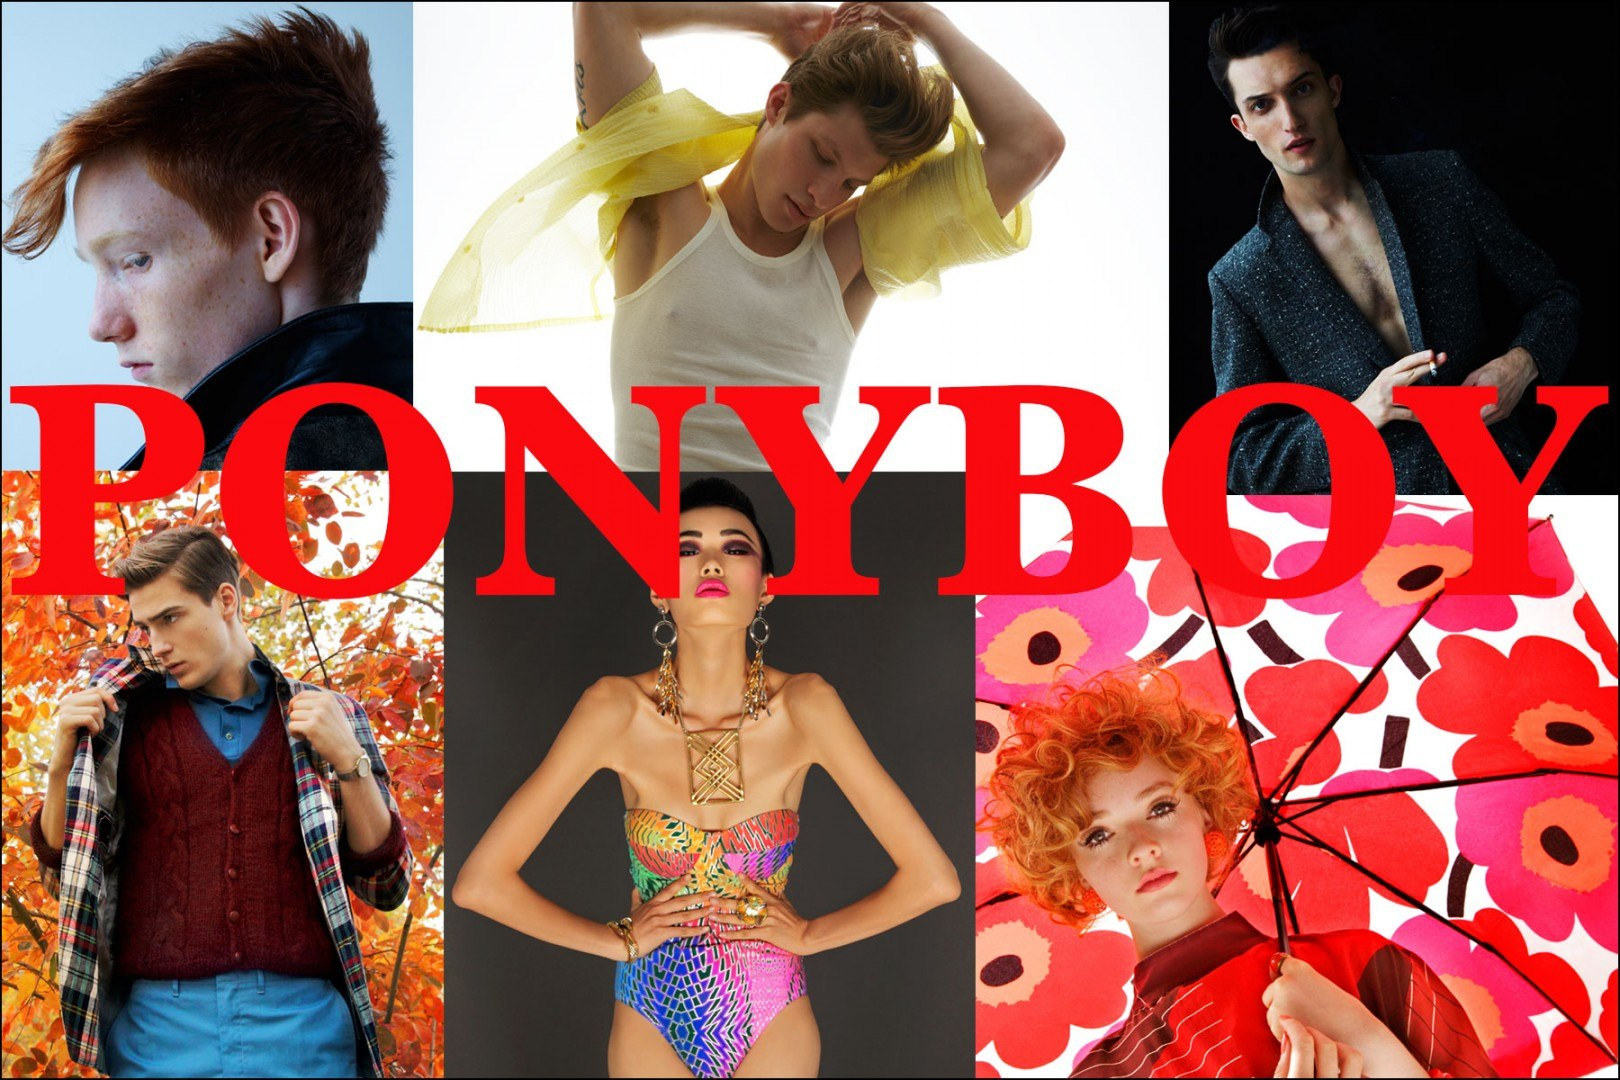 Ponyboy-ABOUT-Collage-3F